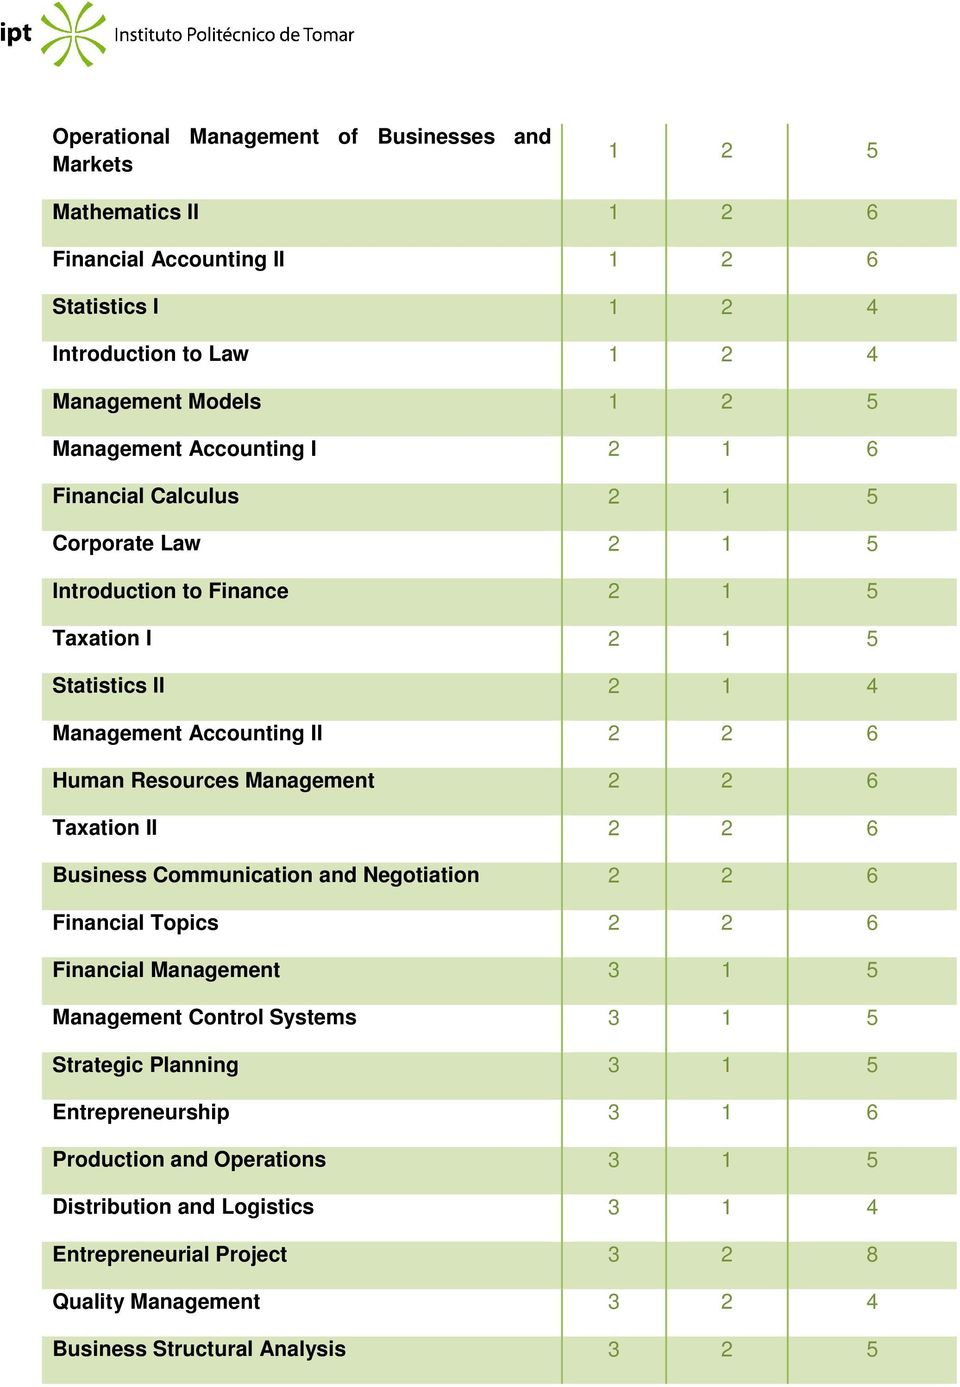 Resources Management 2 2 6 Taxation II 2 2 6 Business Communication and Negotiation 2 2 6 Financial Topics 2 2 6 Financial Management 3 1 5 Management Control Systems 3 1 5 Strategic